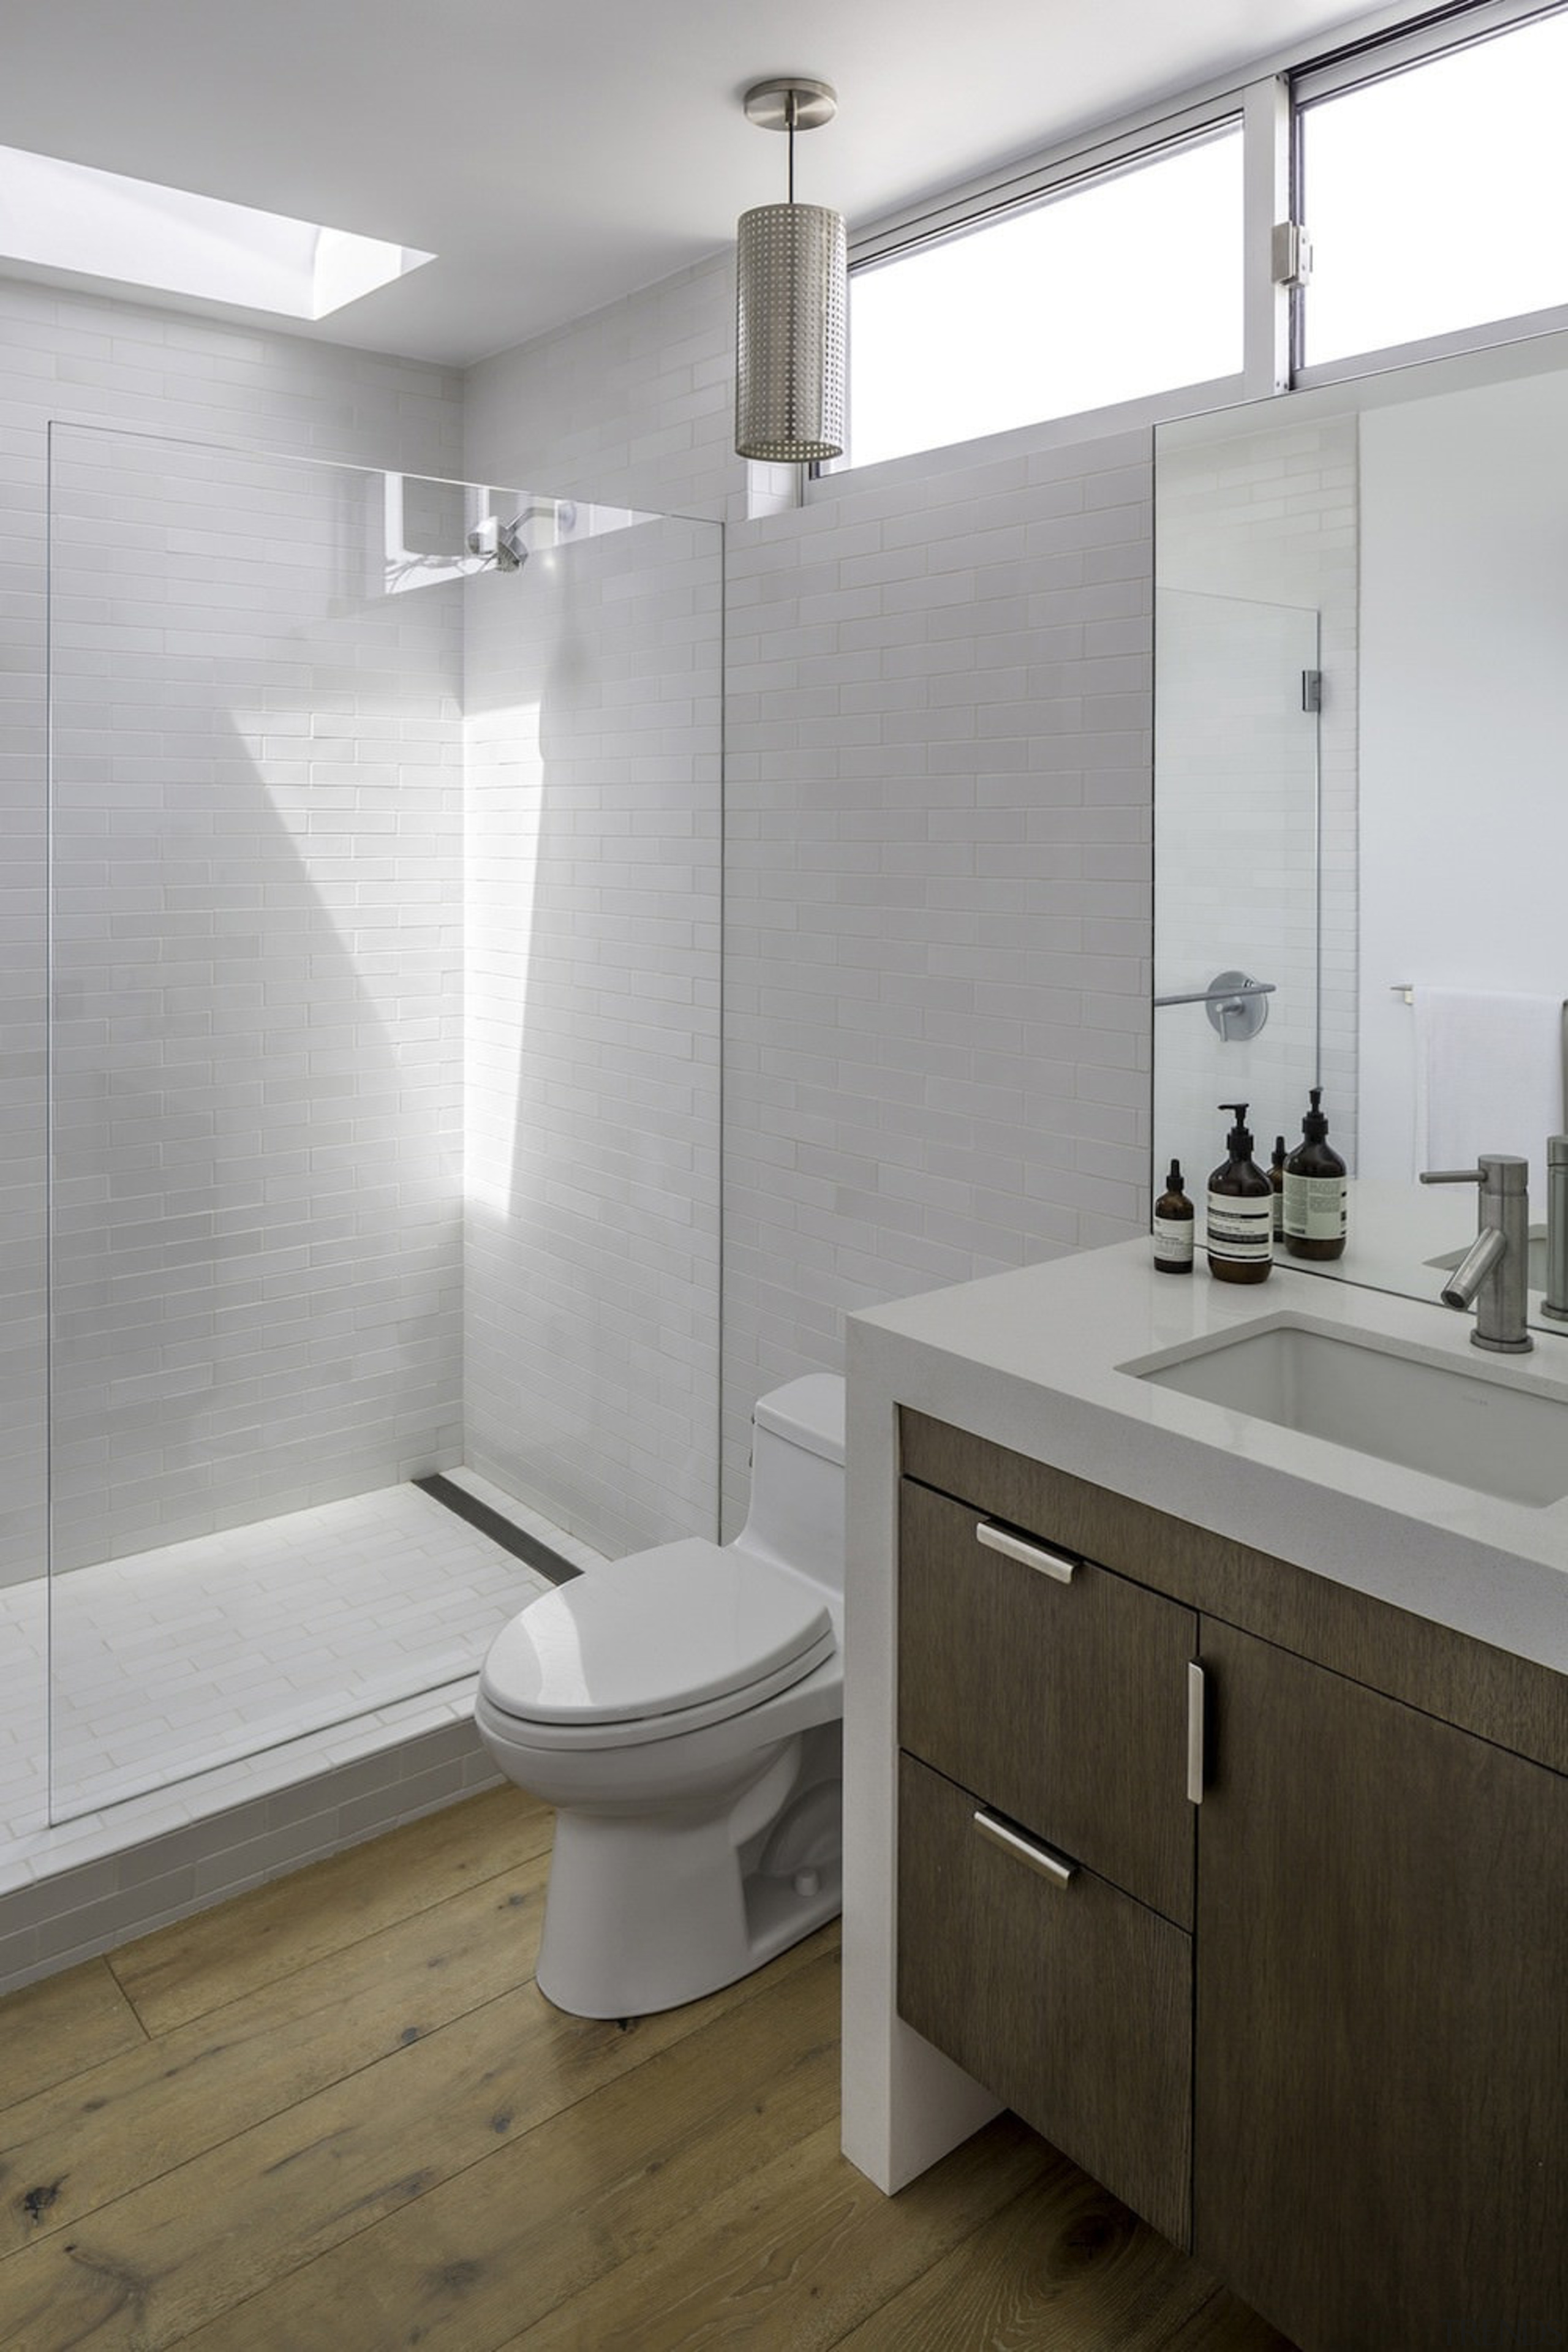 Another bathroom, this one featuring soft whites and architecture, bathroom, bathroom accessory, bathroom cabinet, bathroom sink, floor, home, interior design, plumbing fixture, product design, room, sink, tap, tile, wall, gray